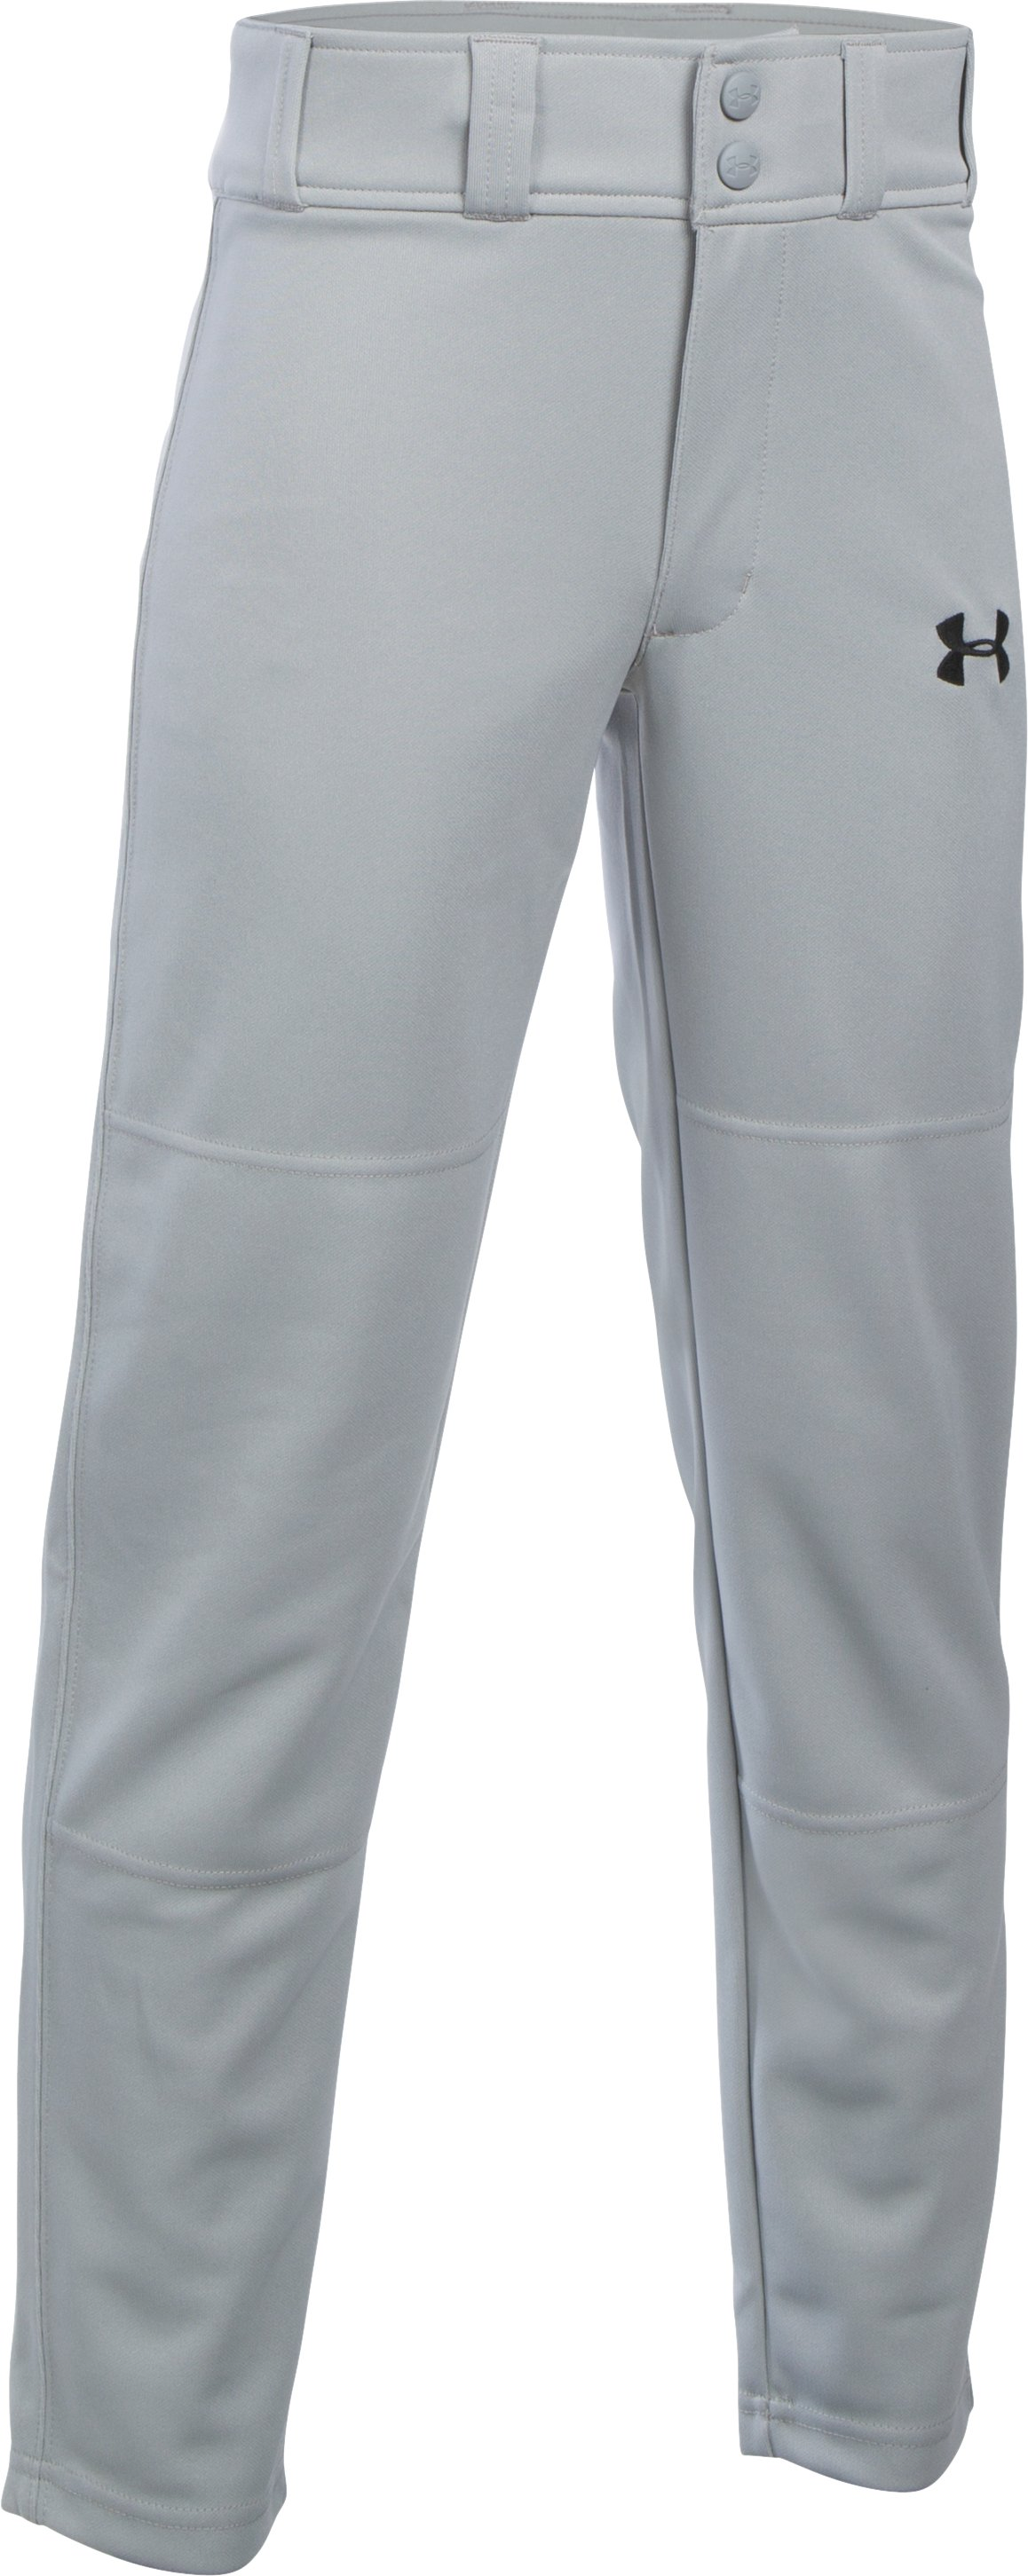 Boys' UA Clean Up Baseball Pants, Baseball Gray